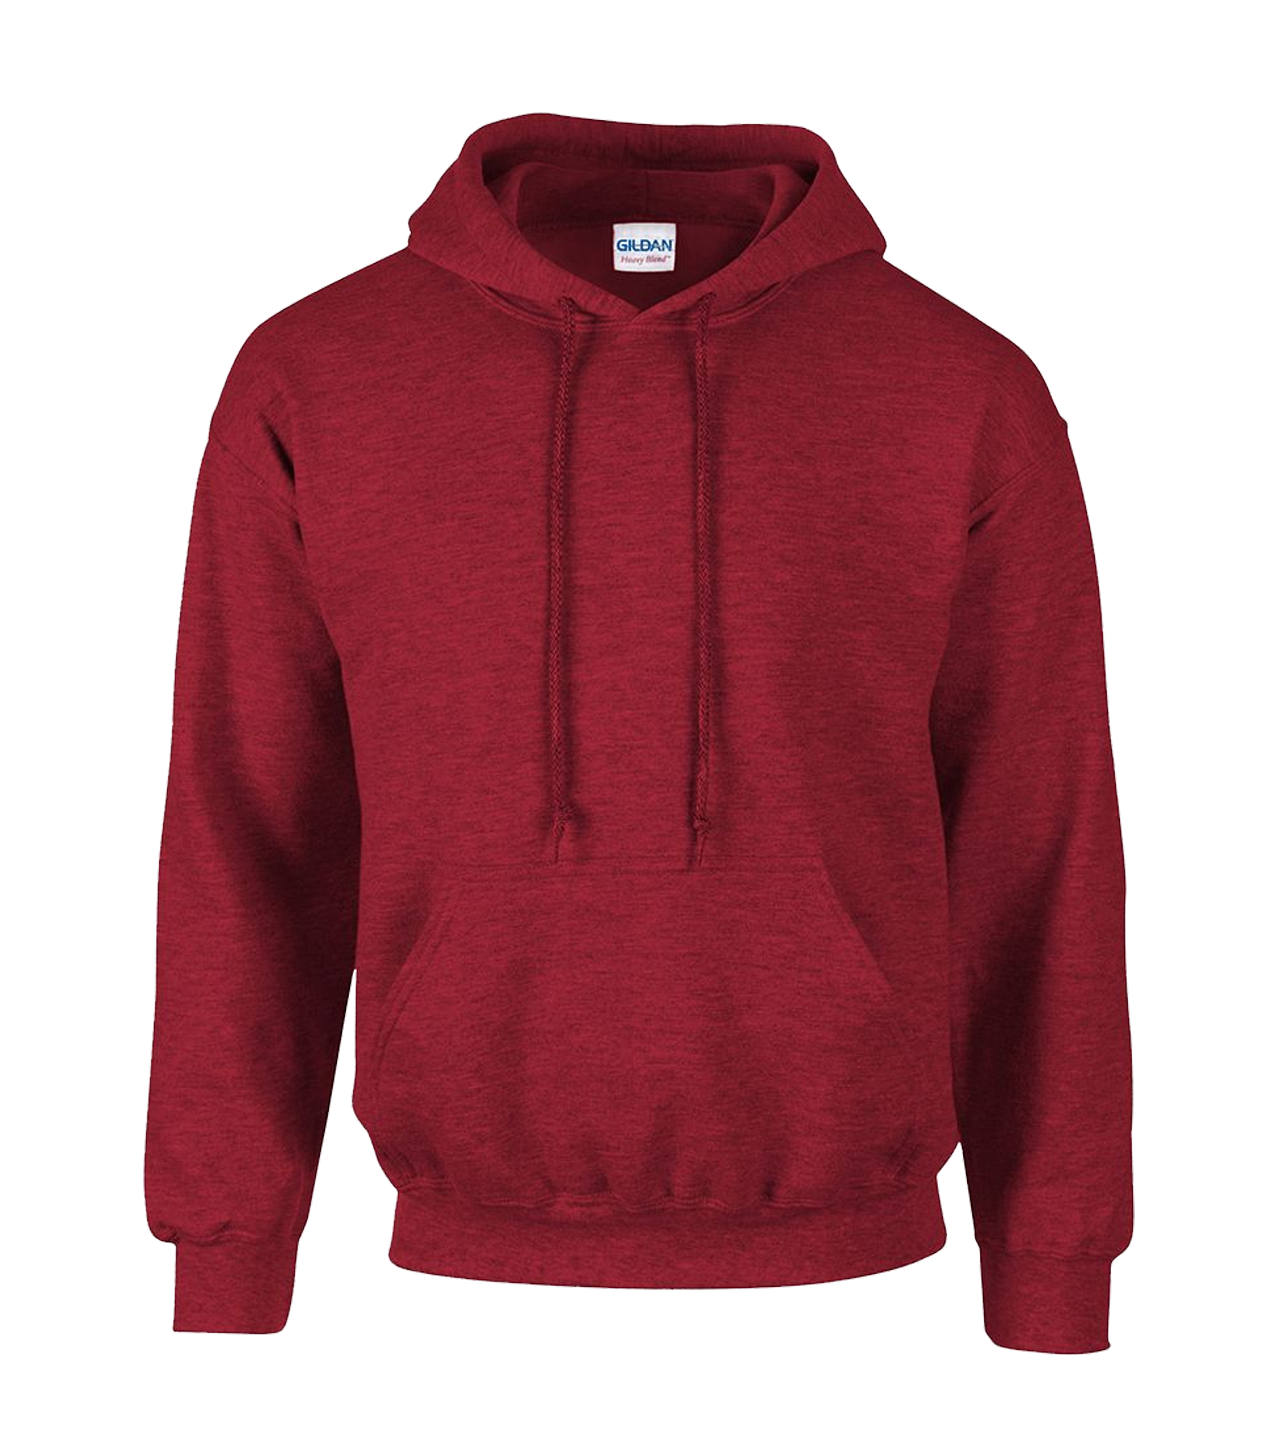 41b9316d GD057 Heavy Blend™ hooded sweatshirt | Best For Workwear